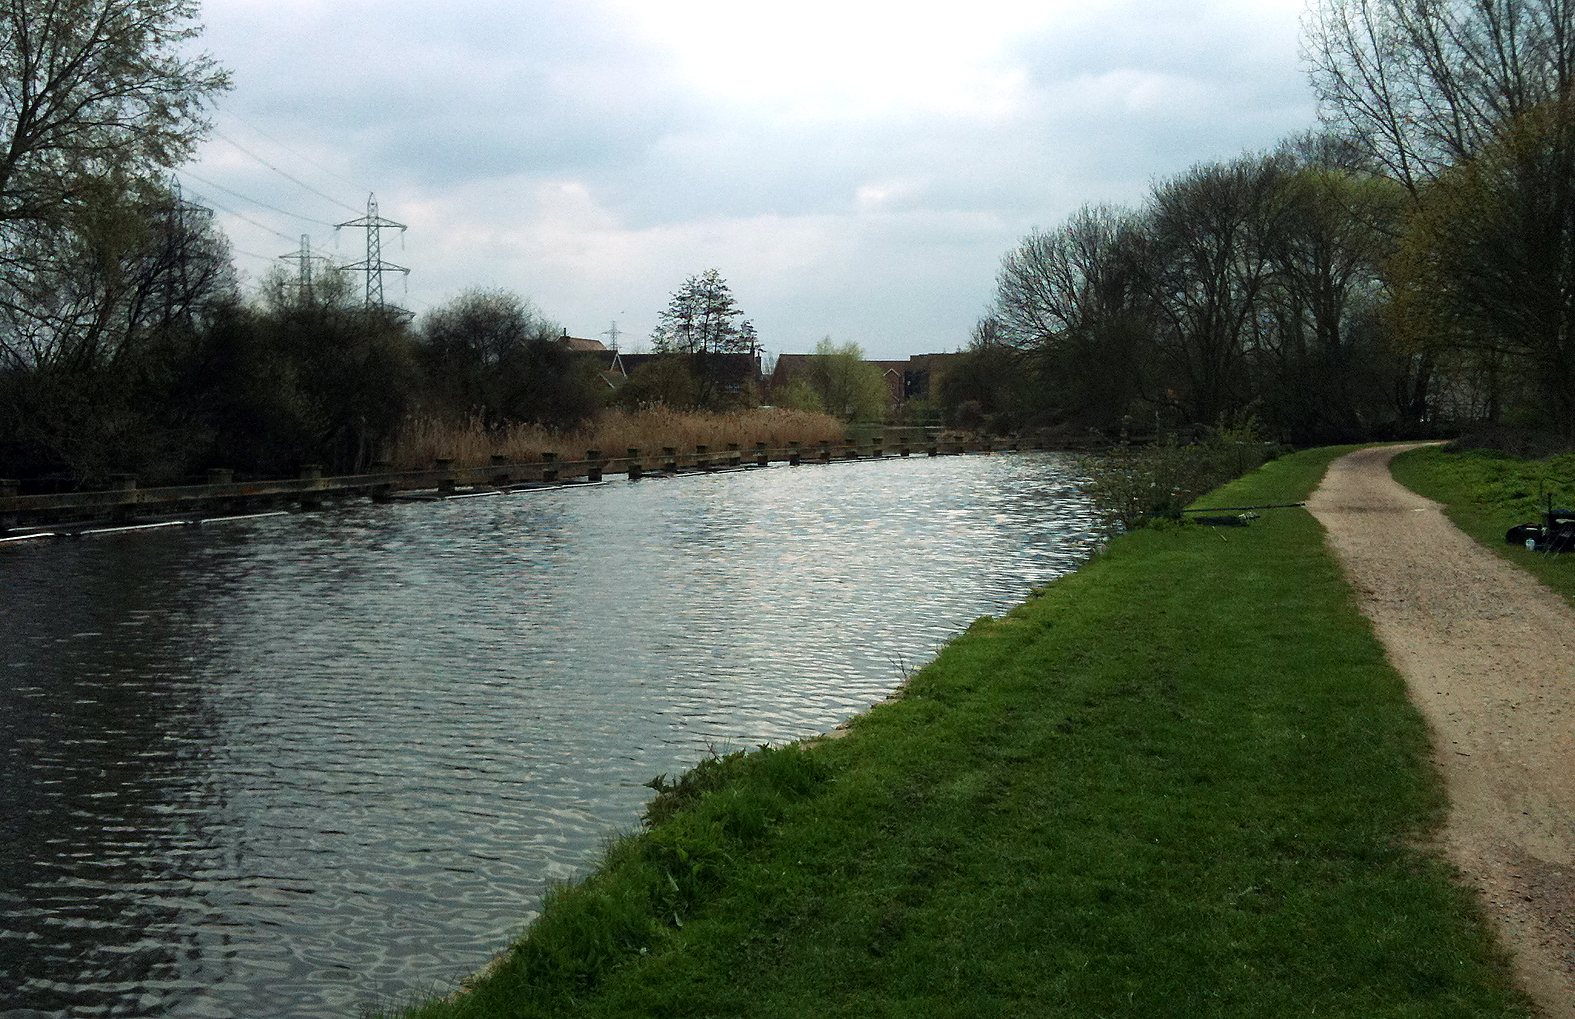 The pilings on the opposite side of the canal seemed to hold the carp